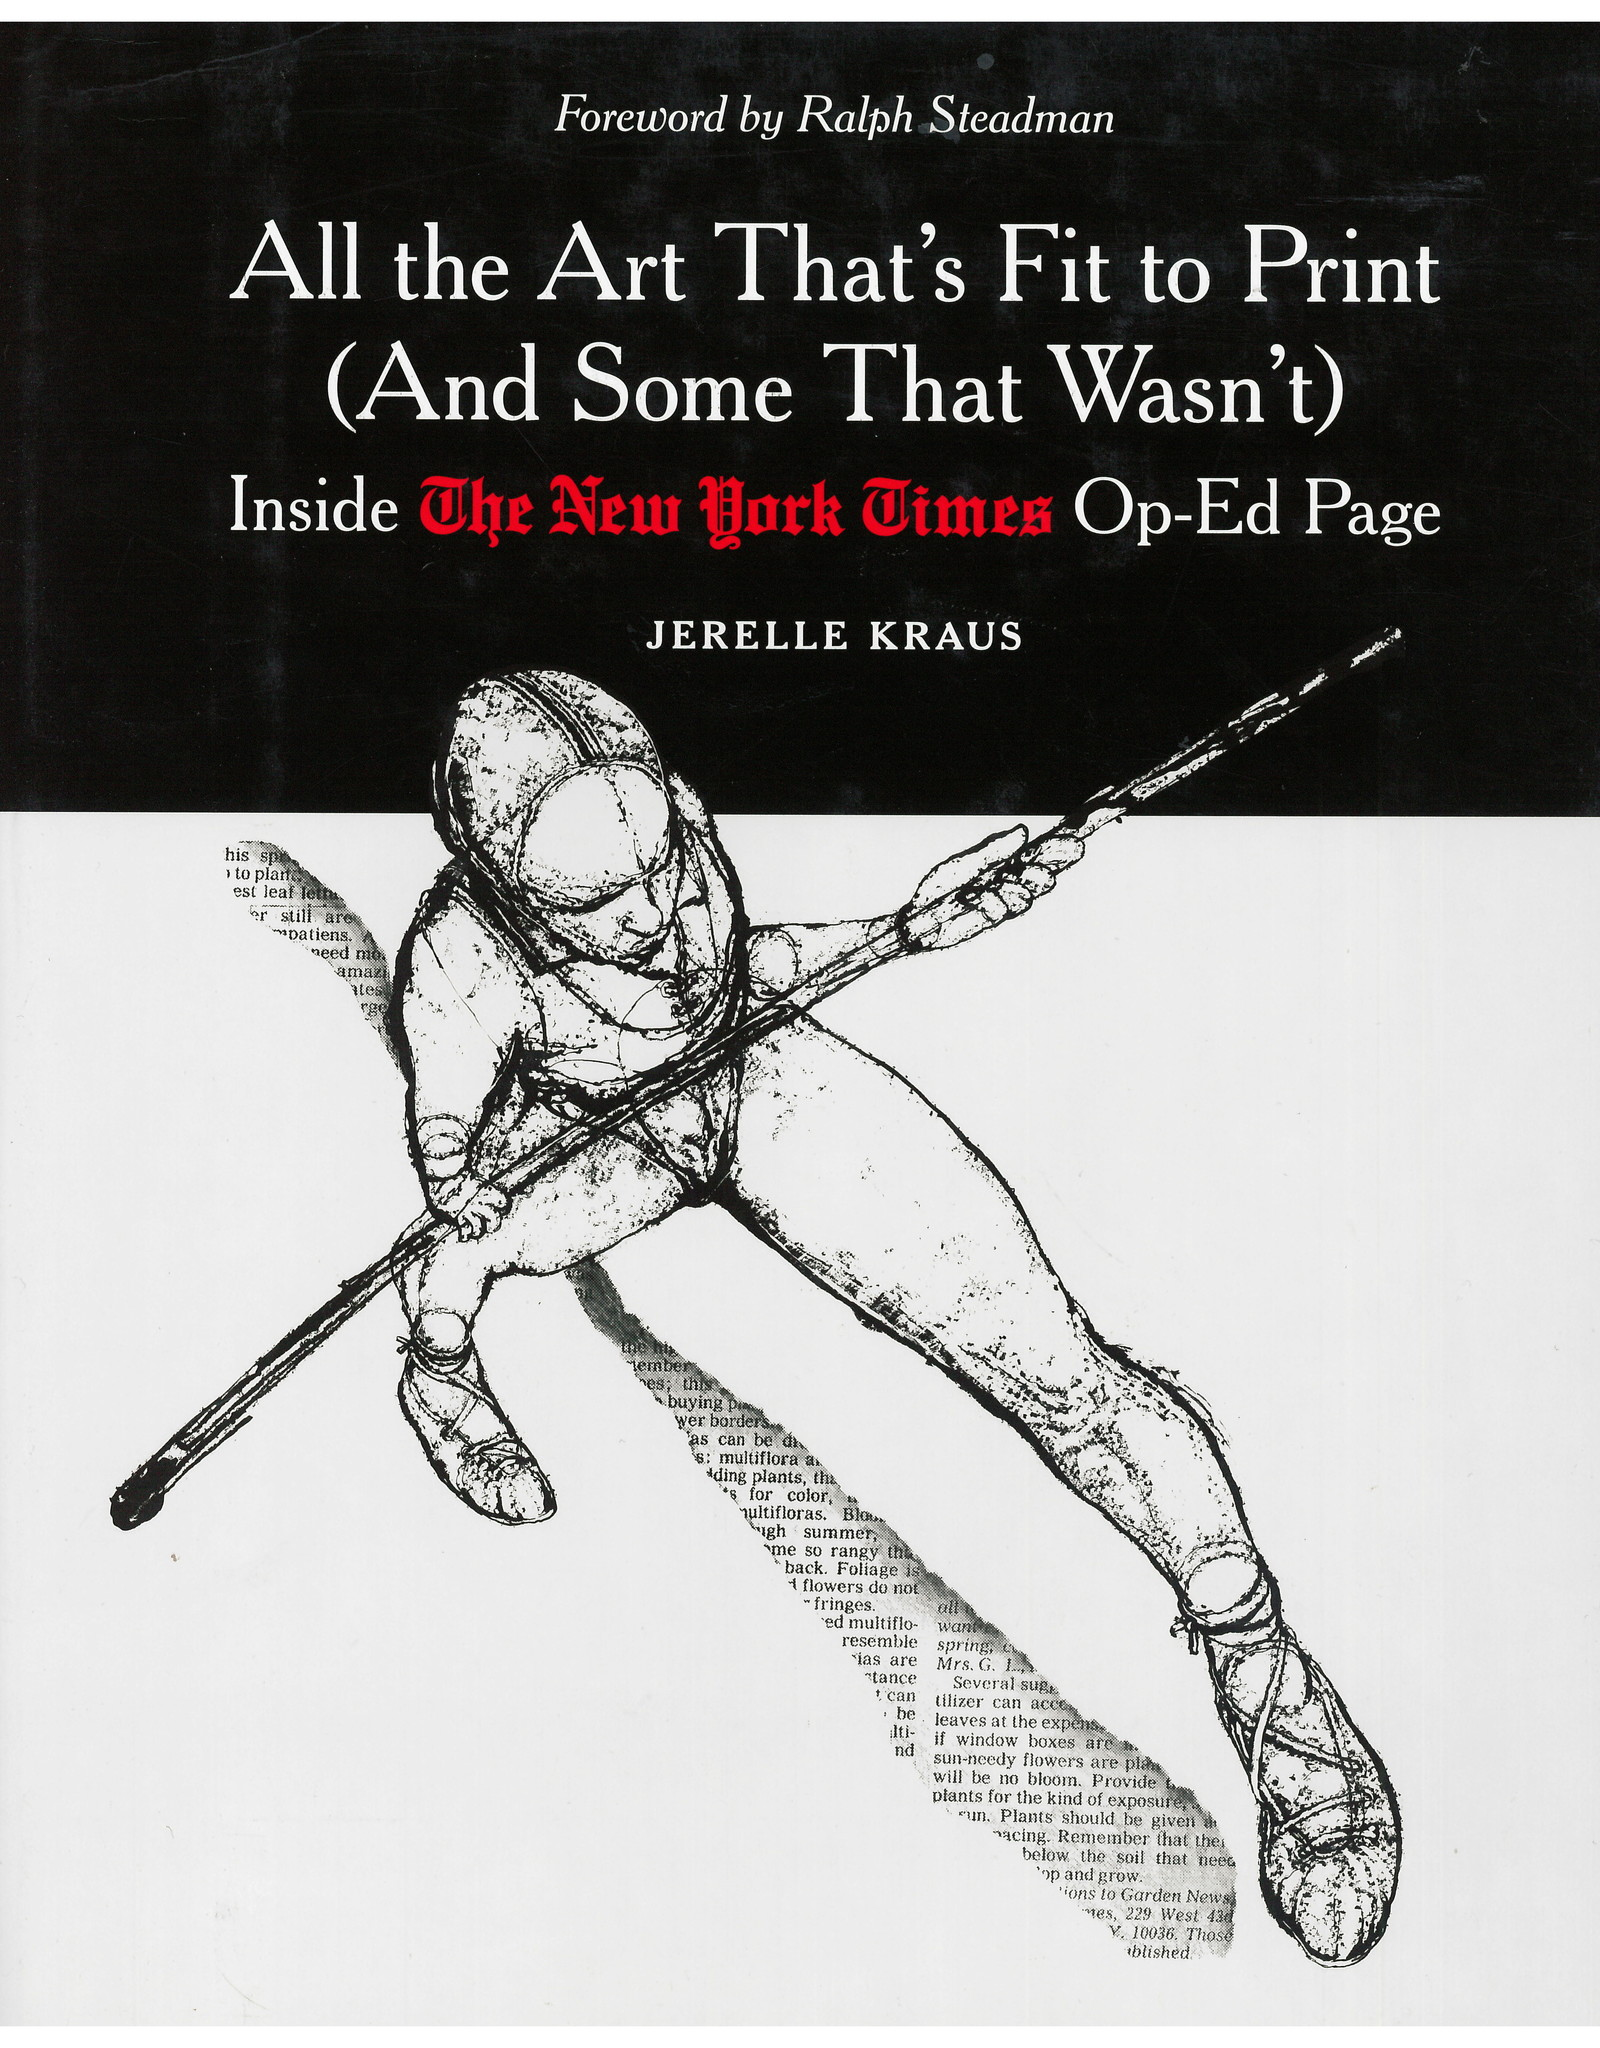 All the Art That's Fit to Print / Jerelle Kraus